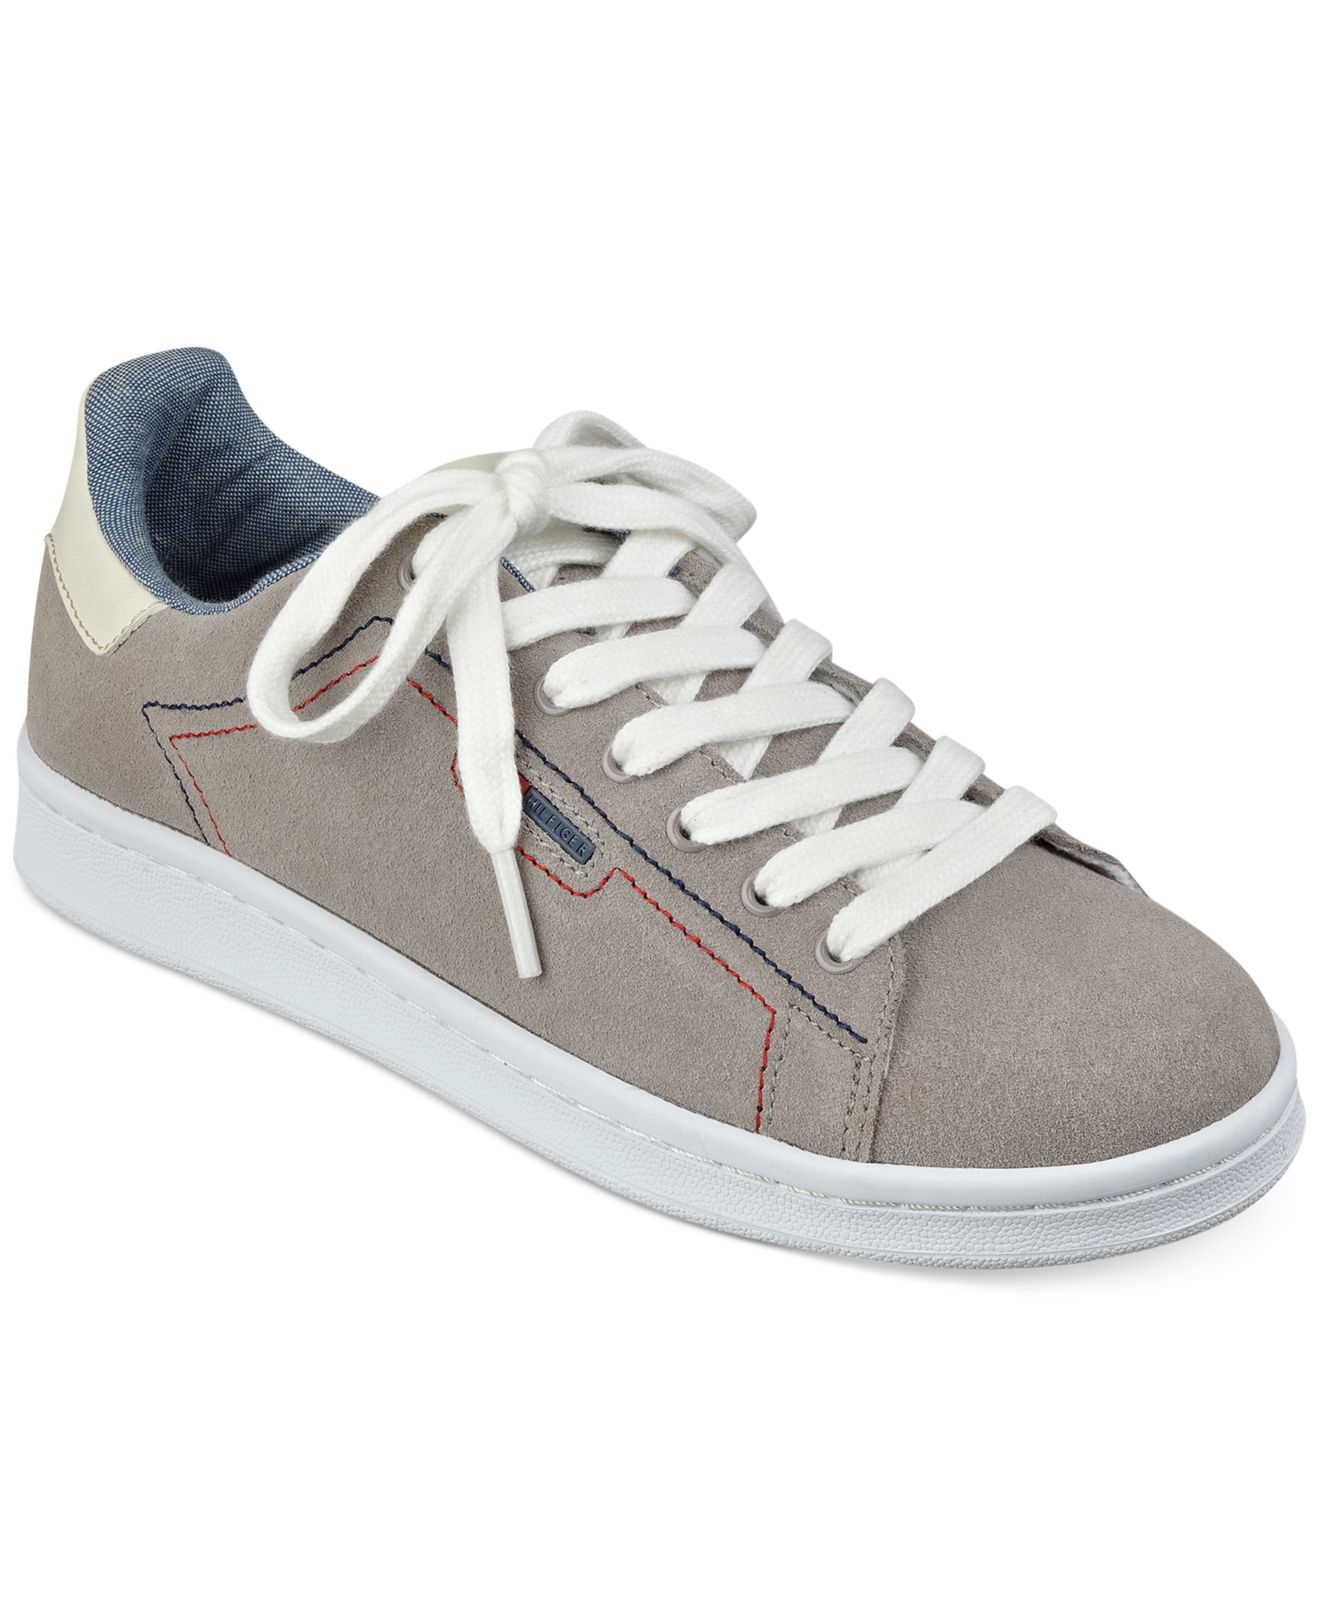 tommy hilfiger women 39 s suzane sneakers in gray lyst. Black Bedroom Furniture Sets. Home Design Ideas